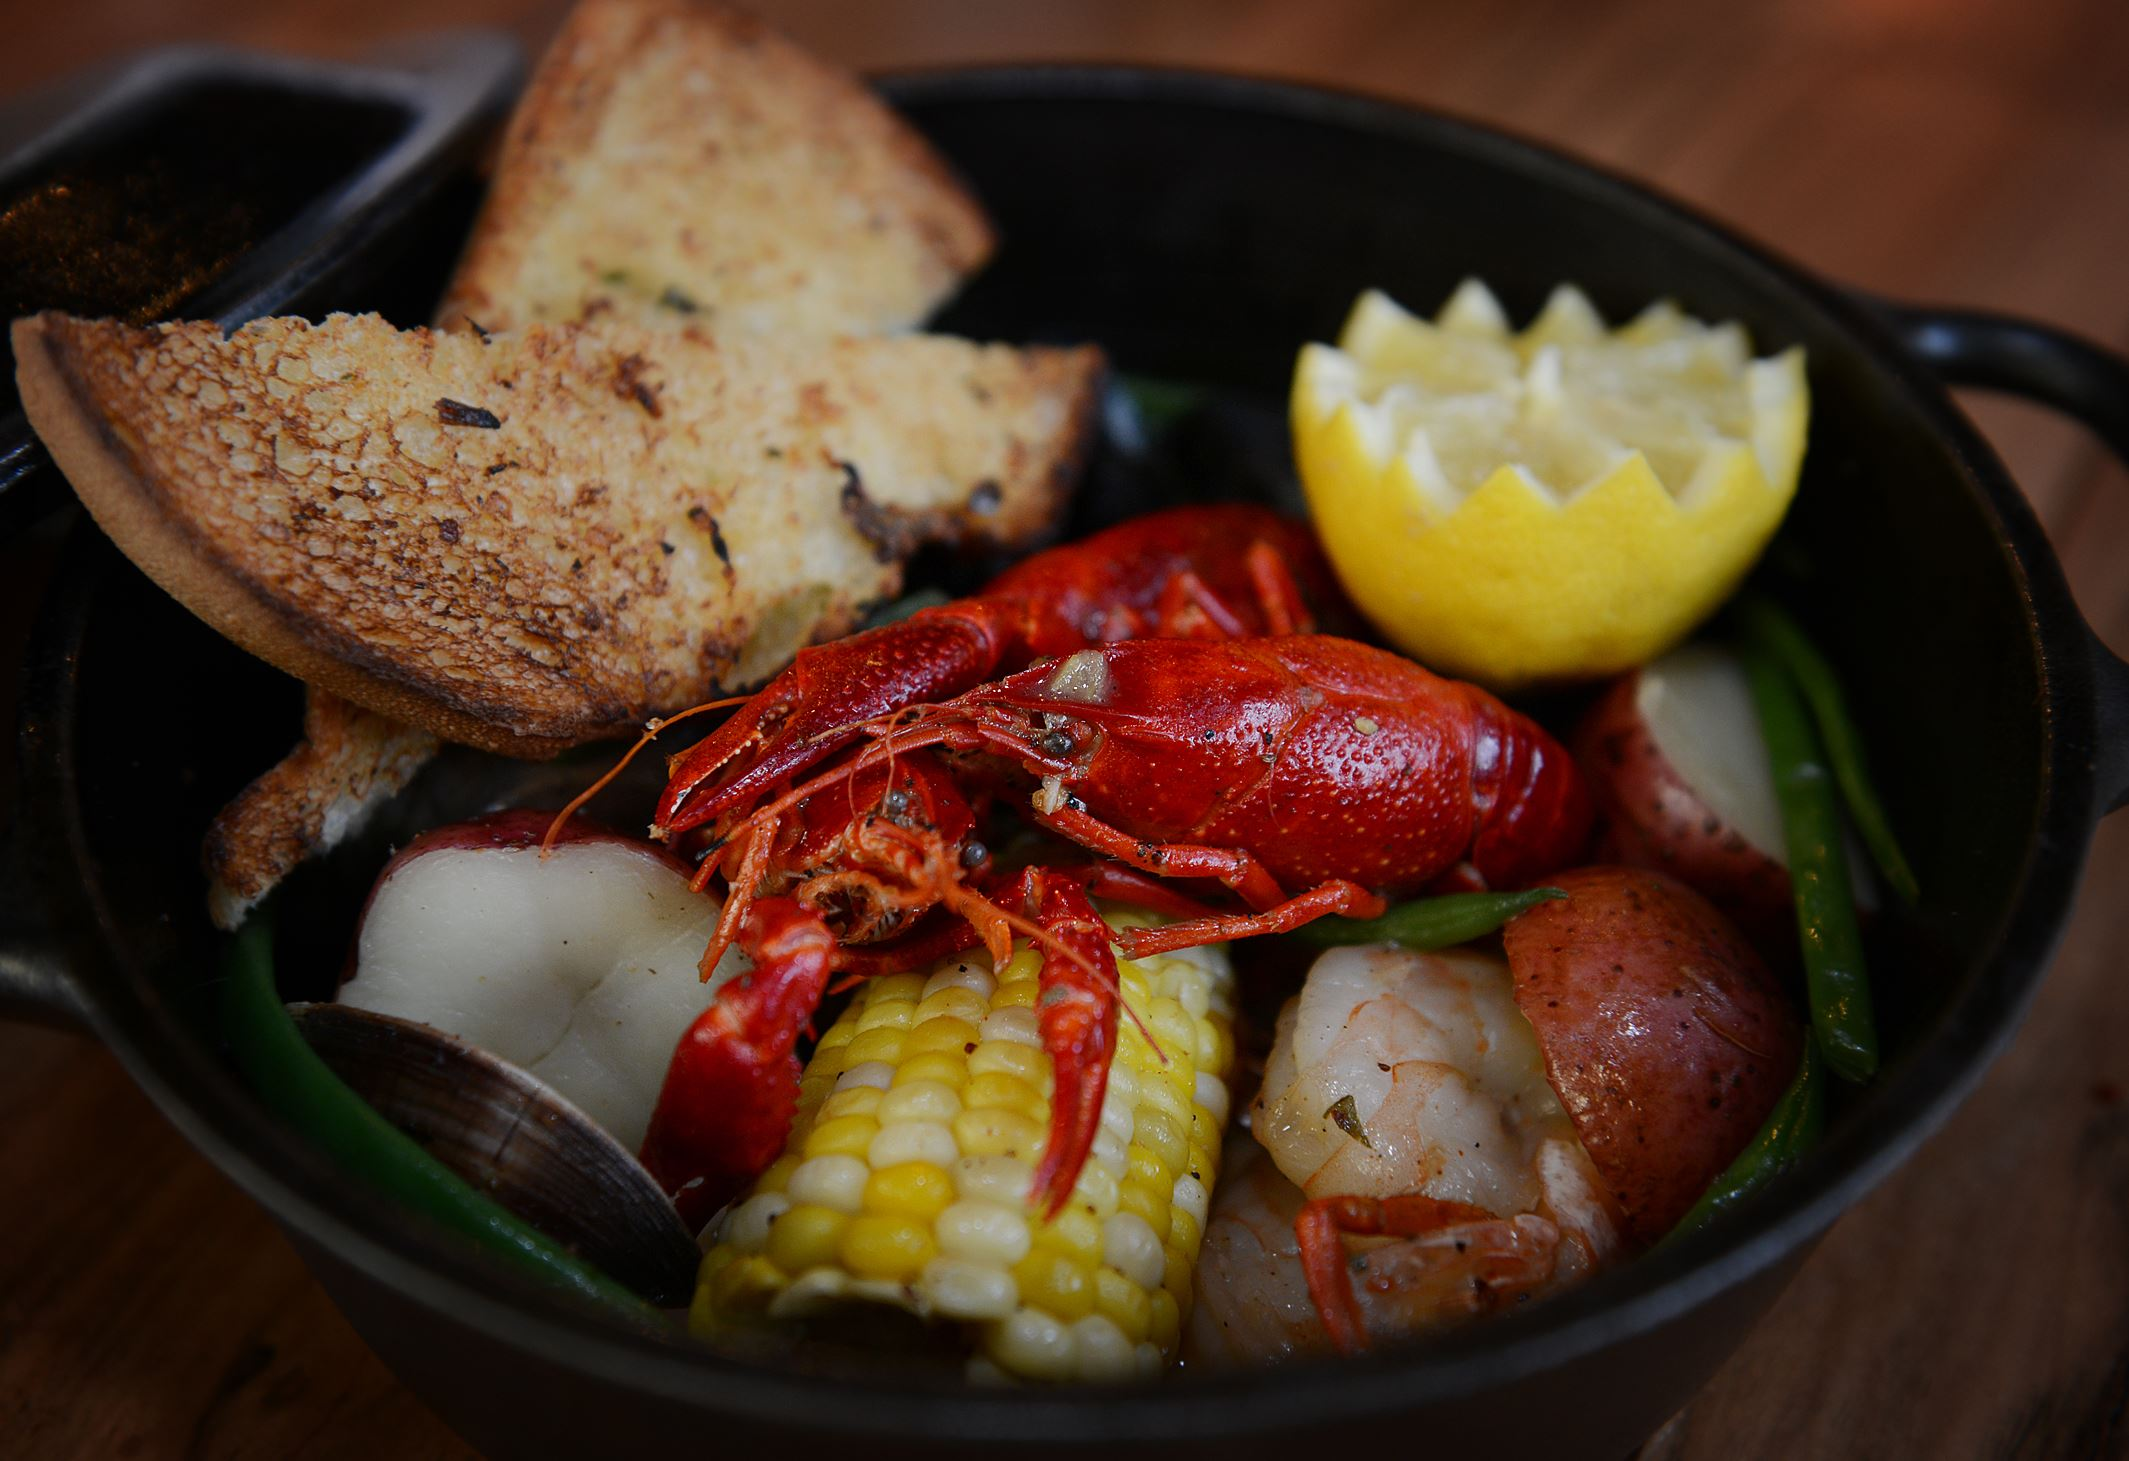 20140318jrTableFood1-1 Ten Penny's American clam bake ($28) is a rustic meal that's big enough to share. Ingredients steamed in Yards Tavern Ale include little neck clams, PEI mussels, shrimp, crawfish, Italian sausage, corn on the cob, red potatoes and haricot vert